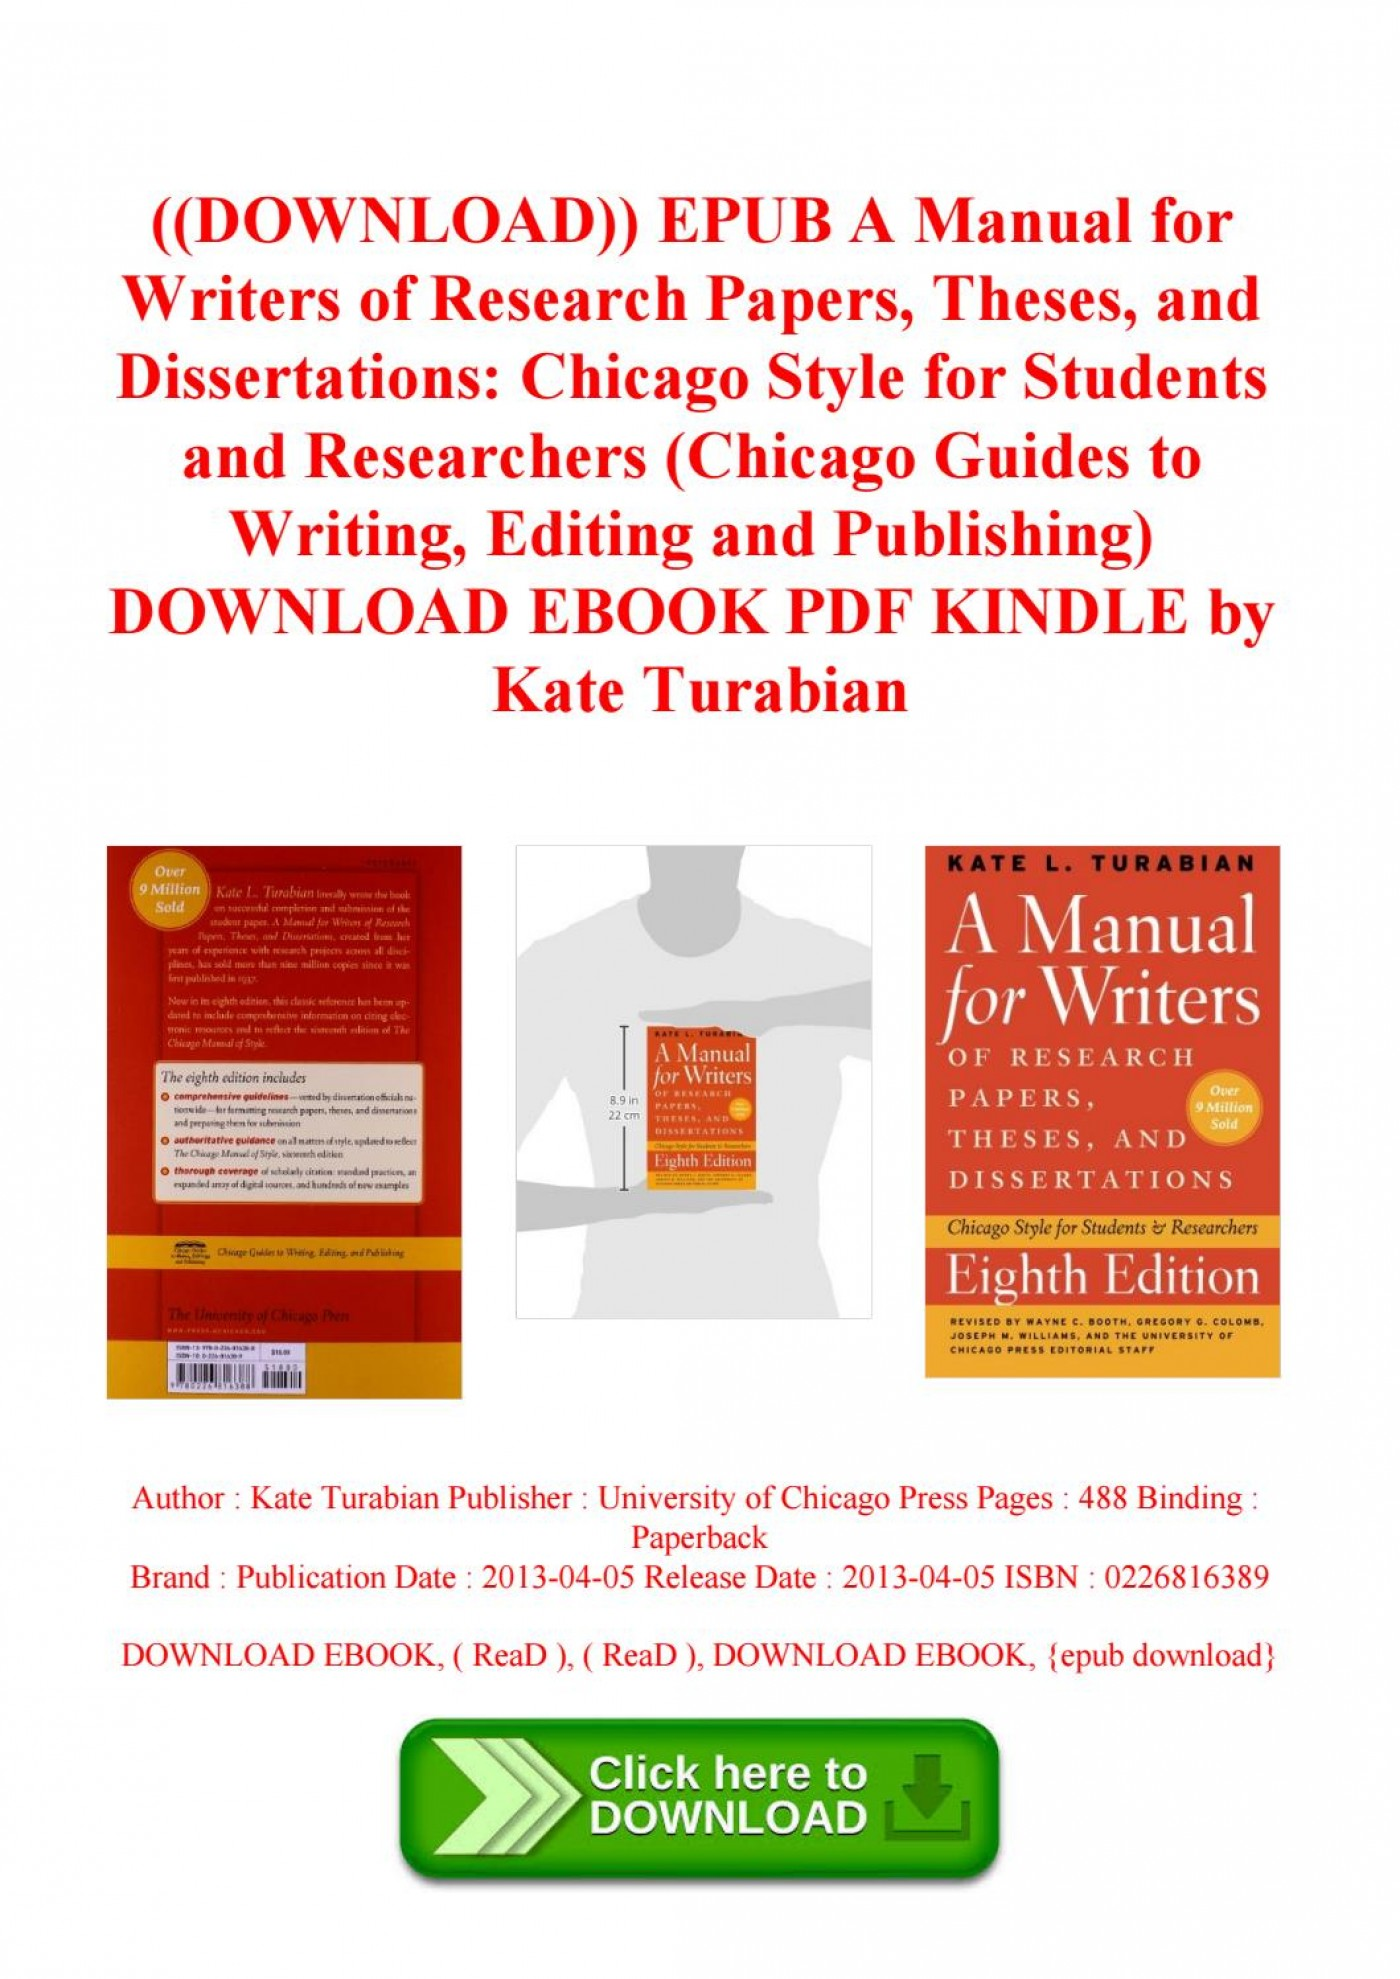 006 Manual For Writers Of Research Papers Theses And Dissertations Ebook Paper Page 1 Unbelievable A 1400